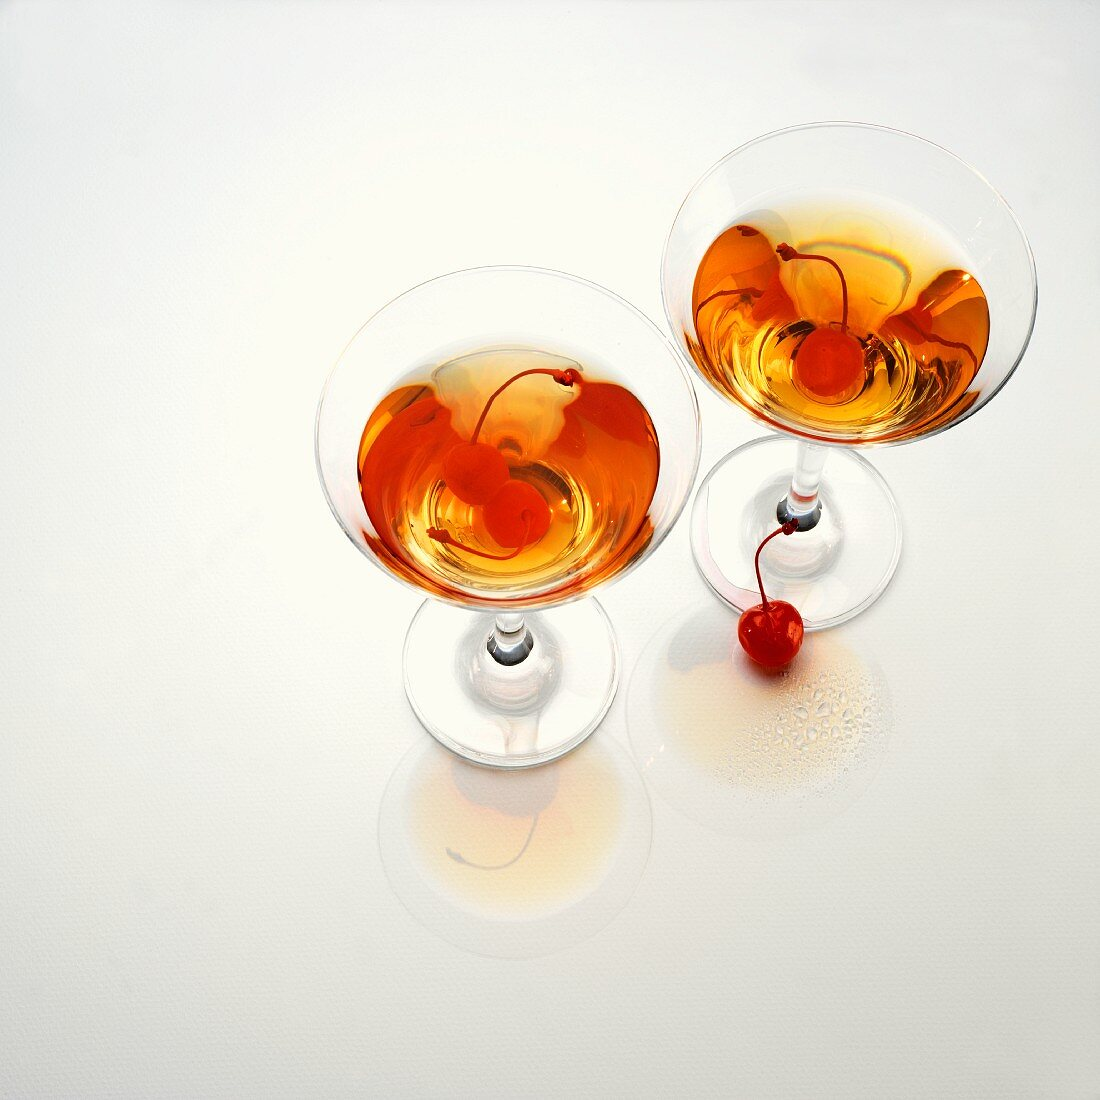 Martinis with cherries